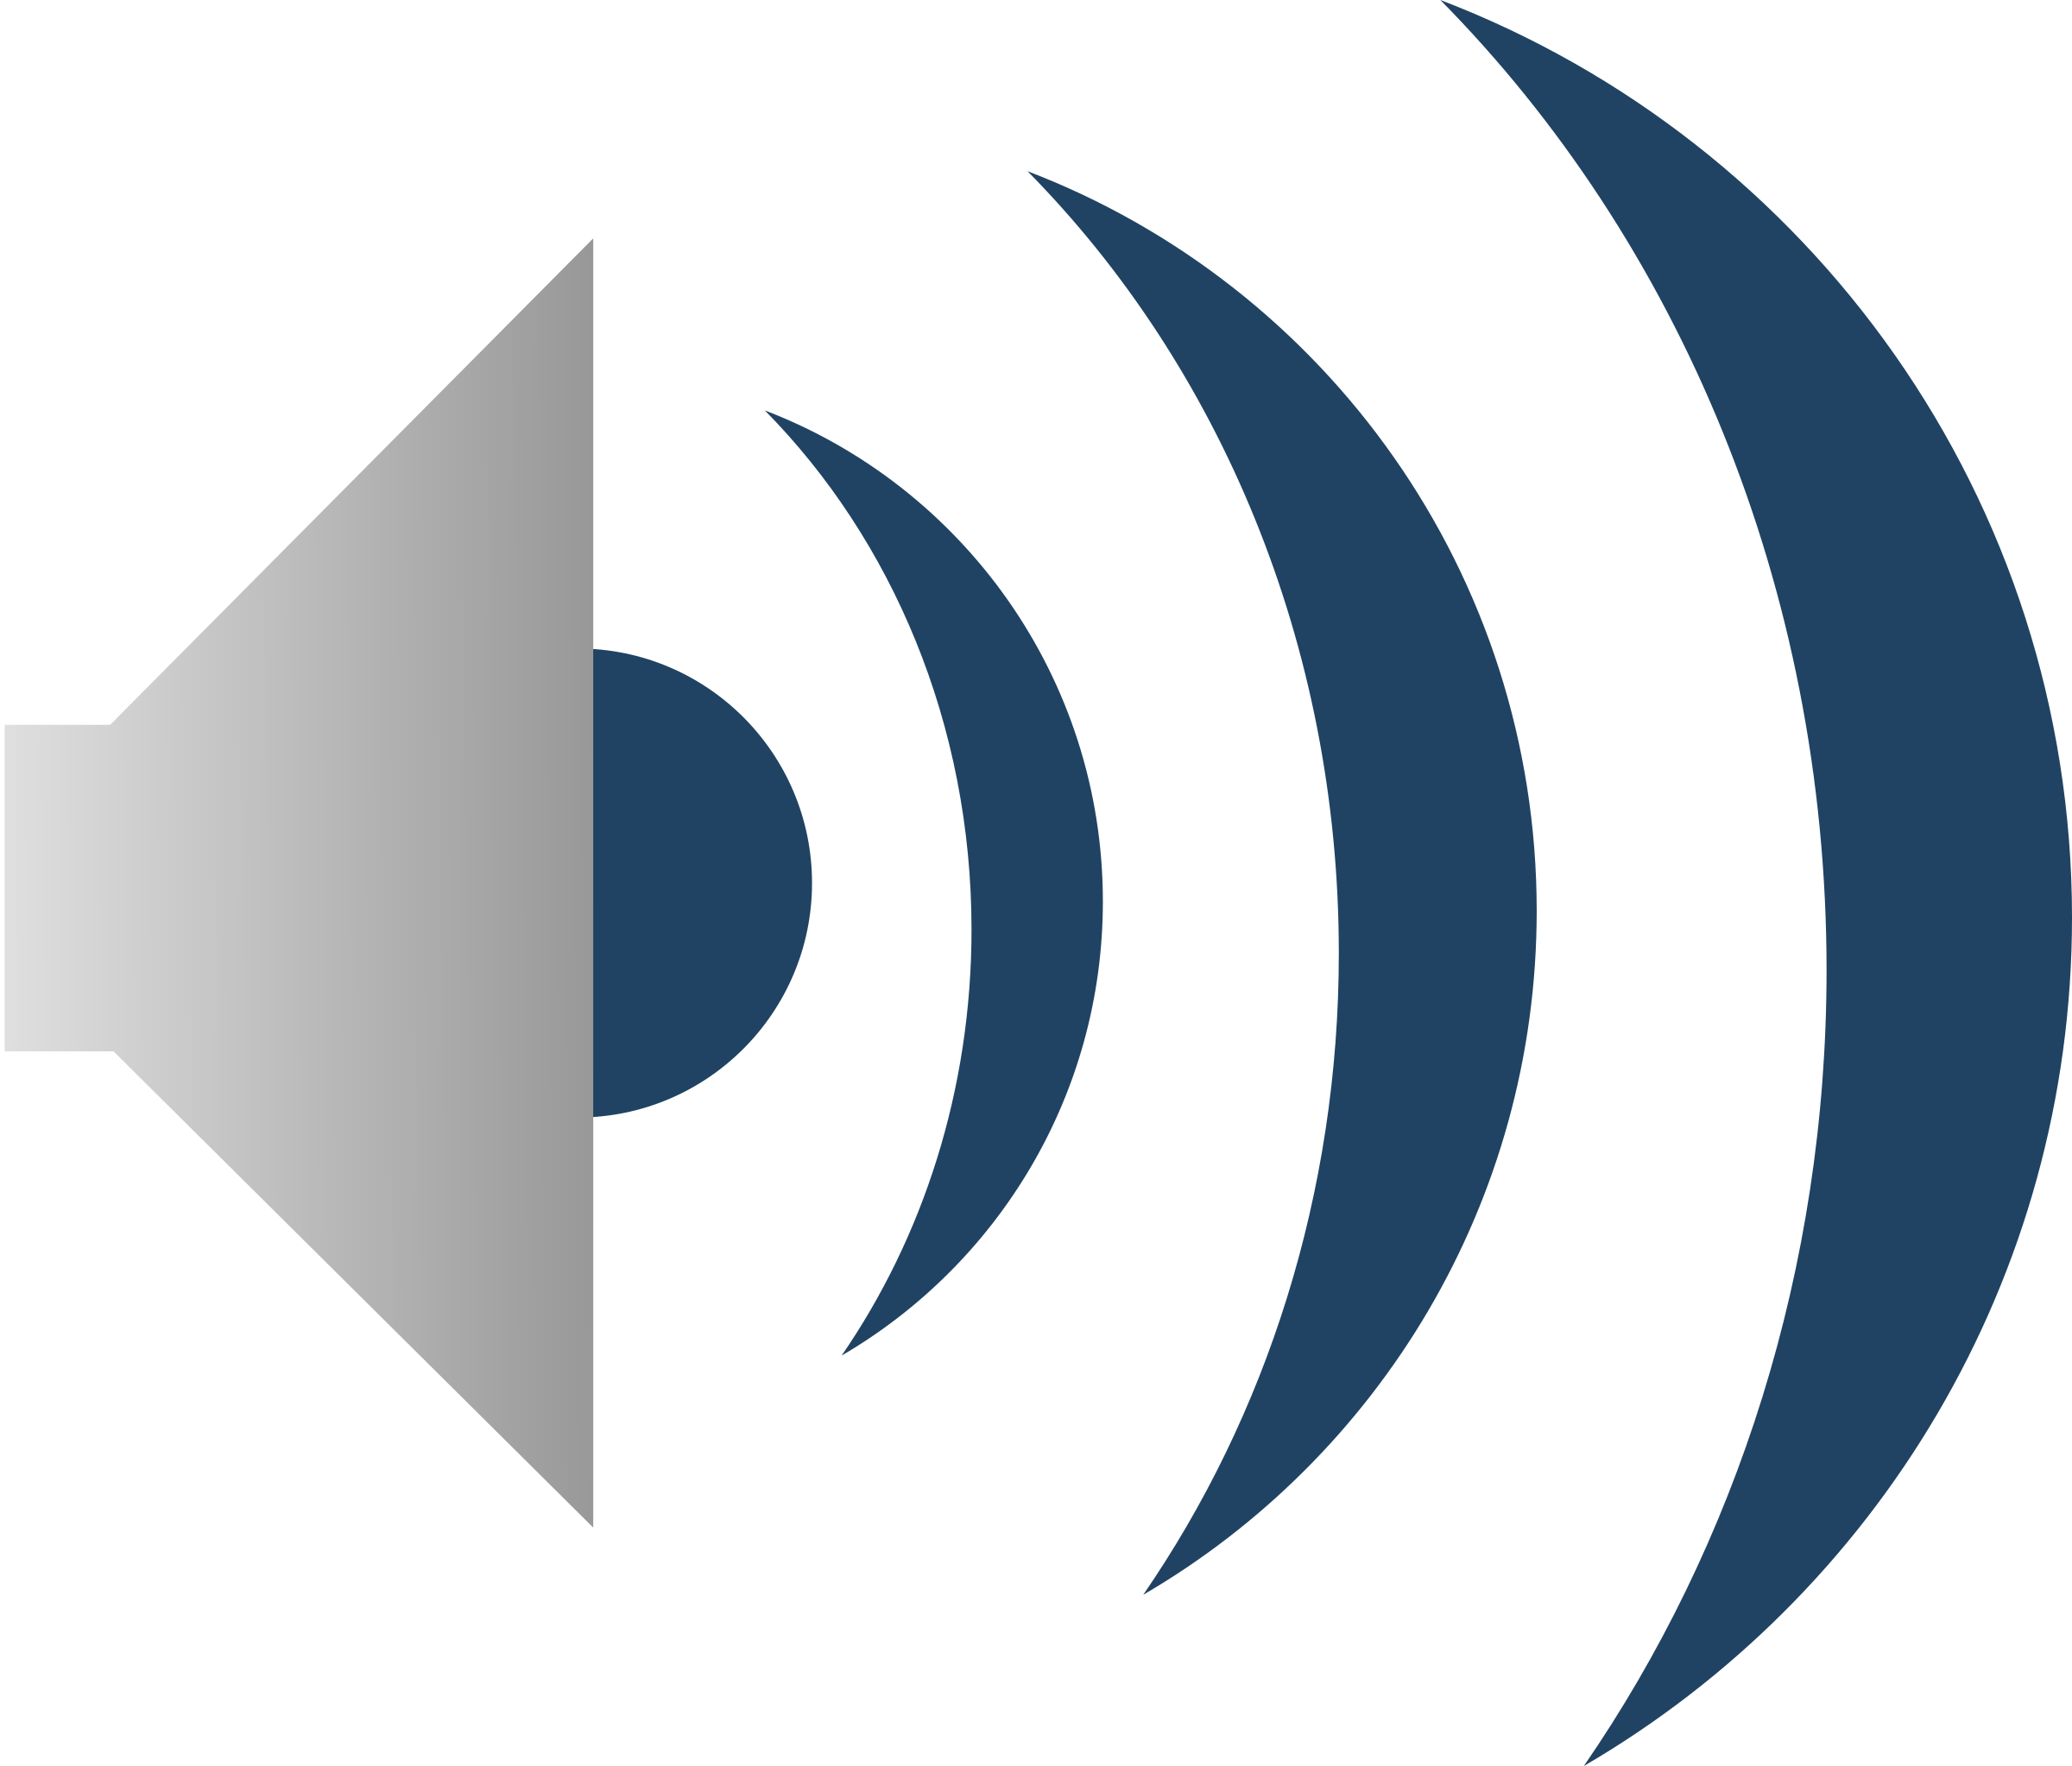 Audio icon by atlantis